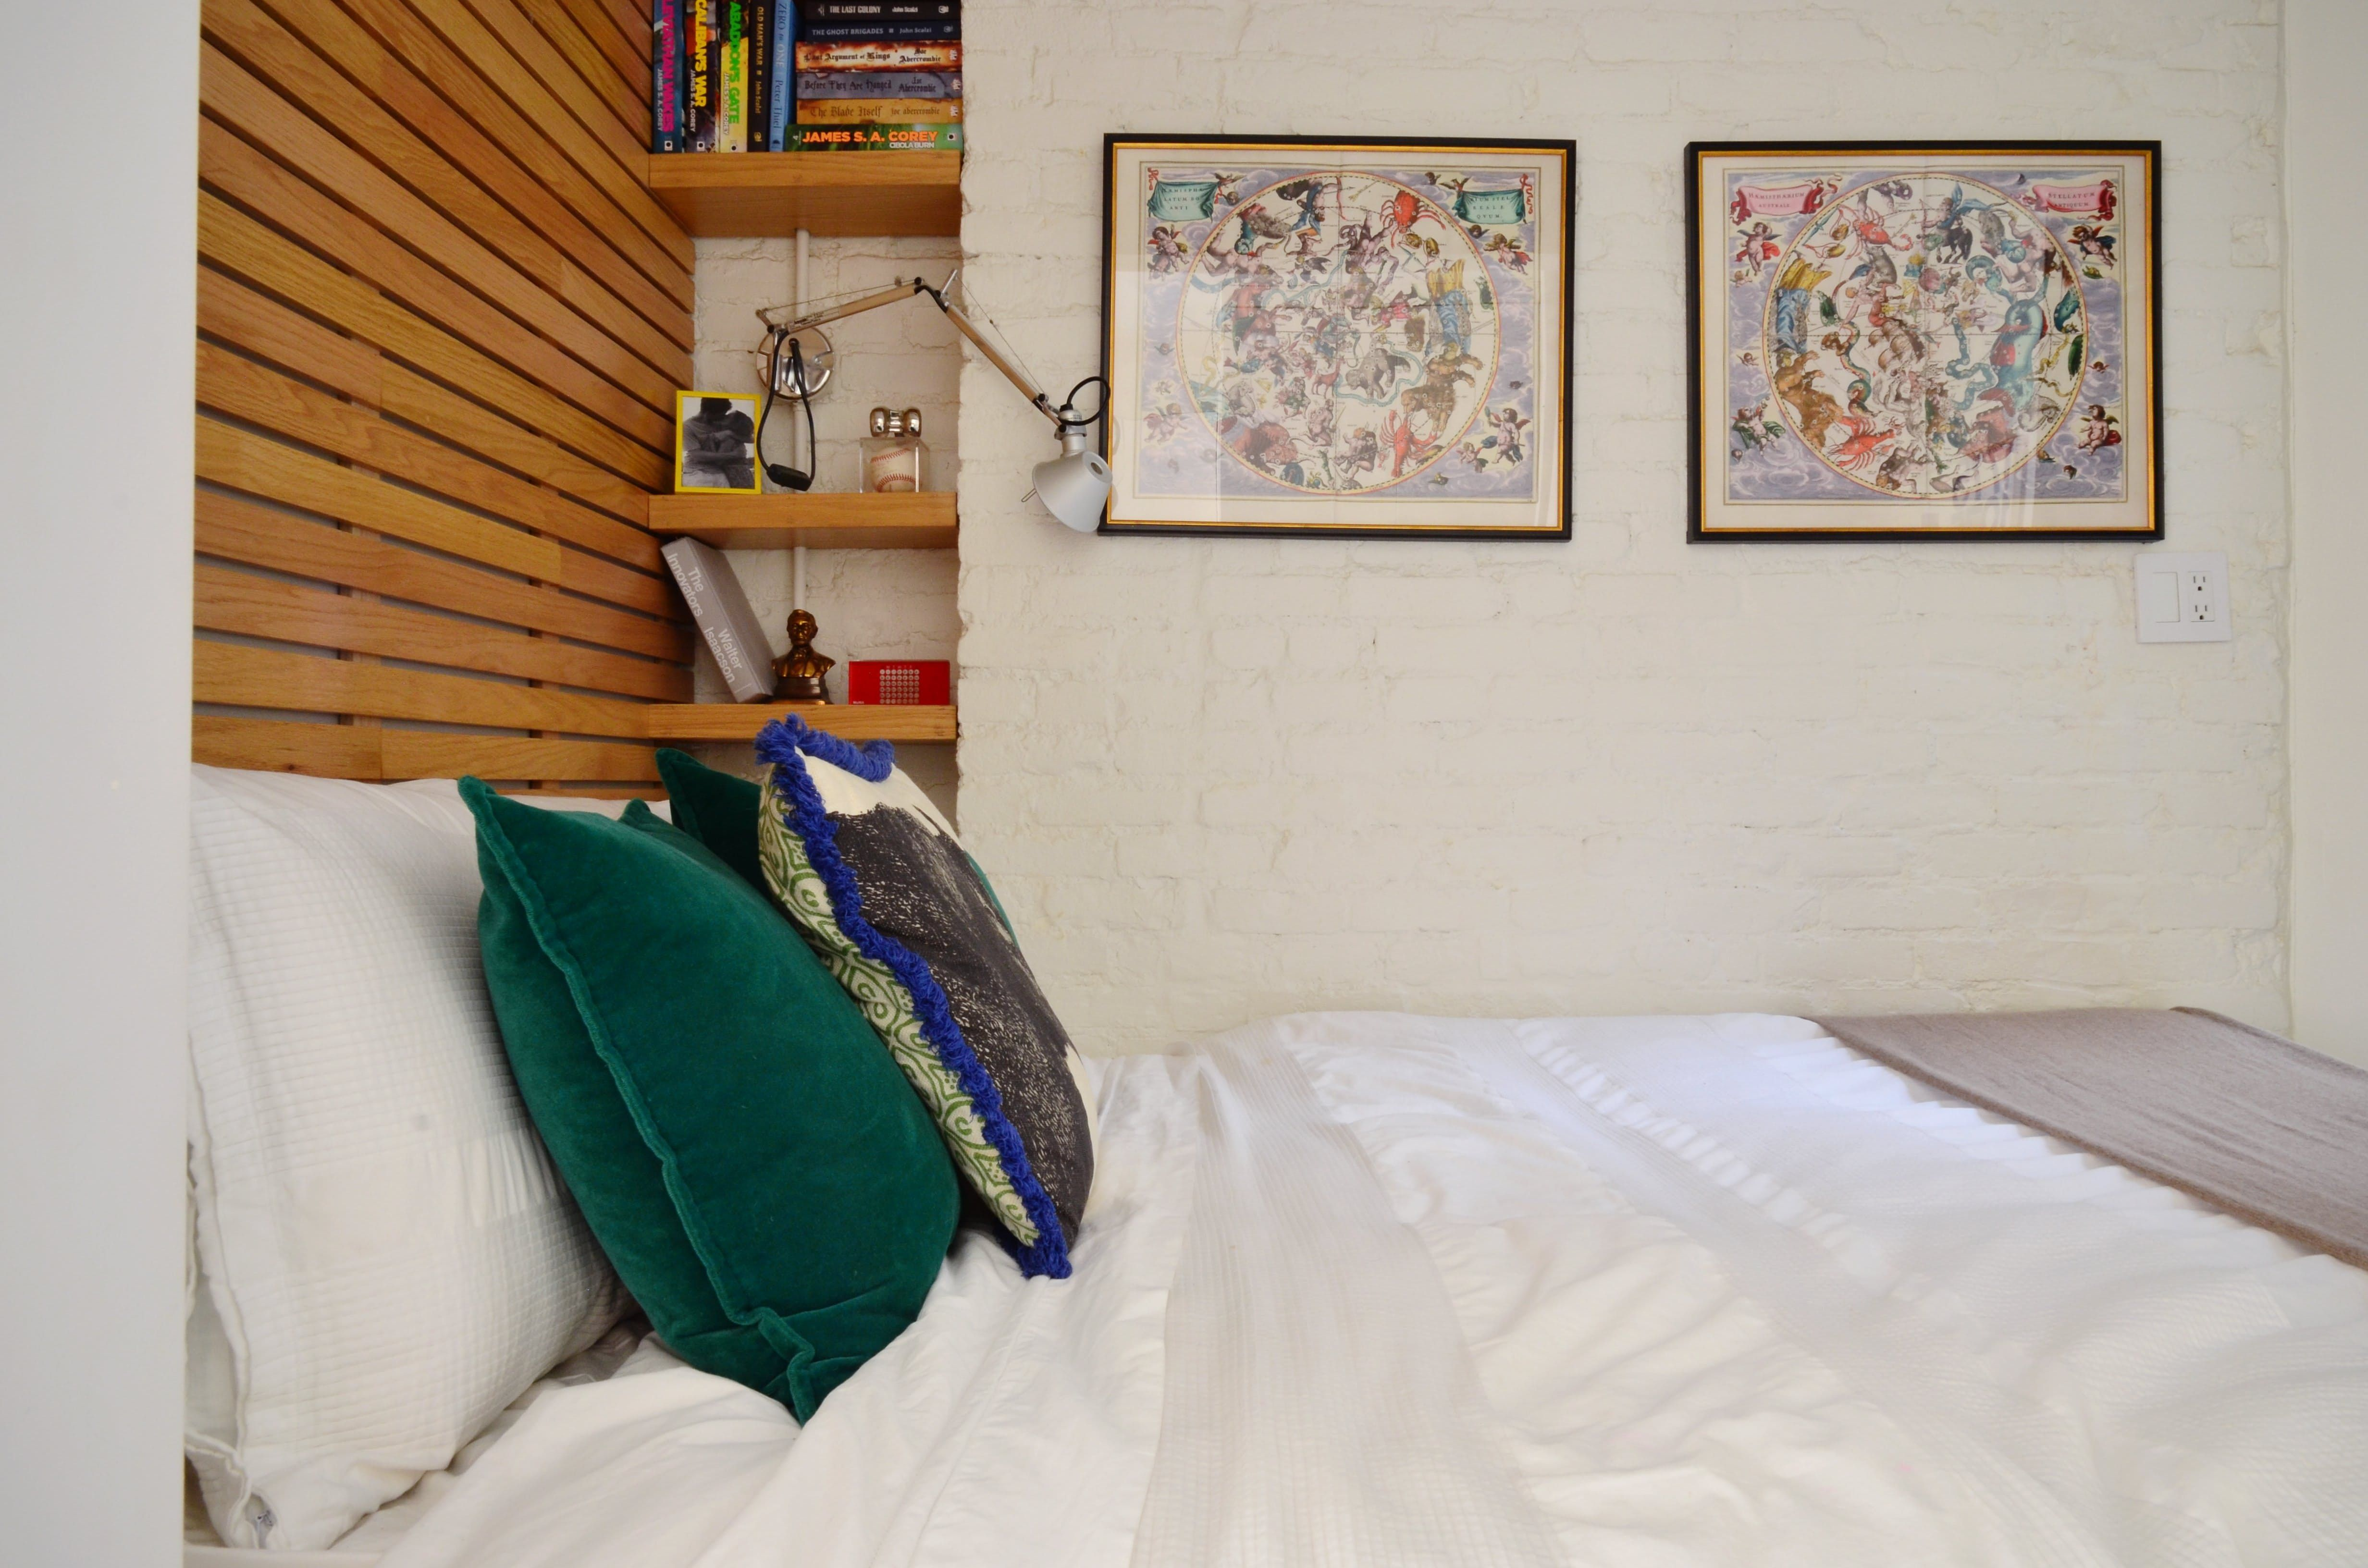 A New York Couple Shares 350 Square Feet | Small spaces, House tours ...